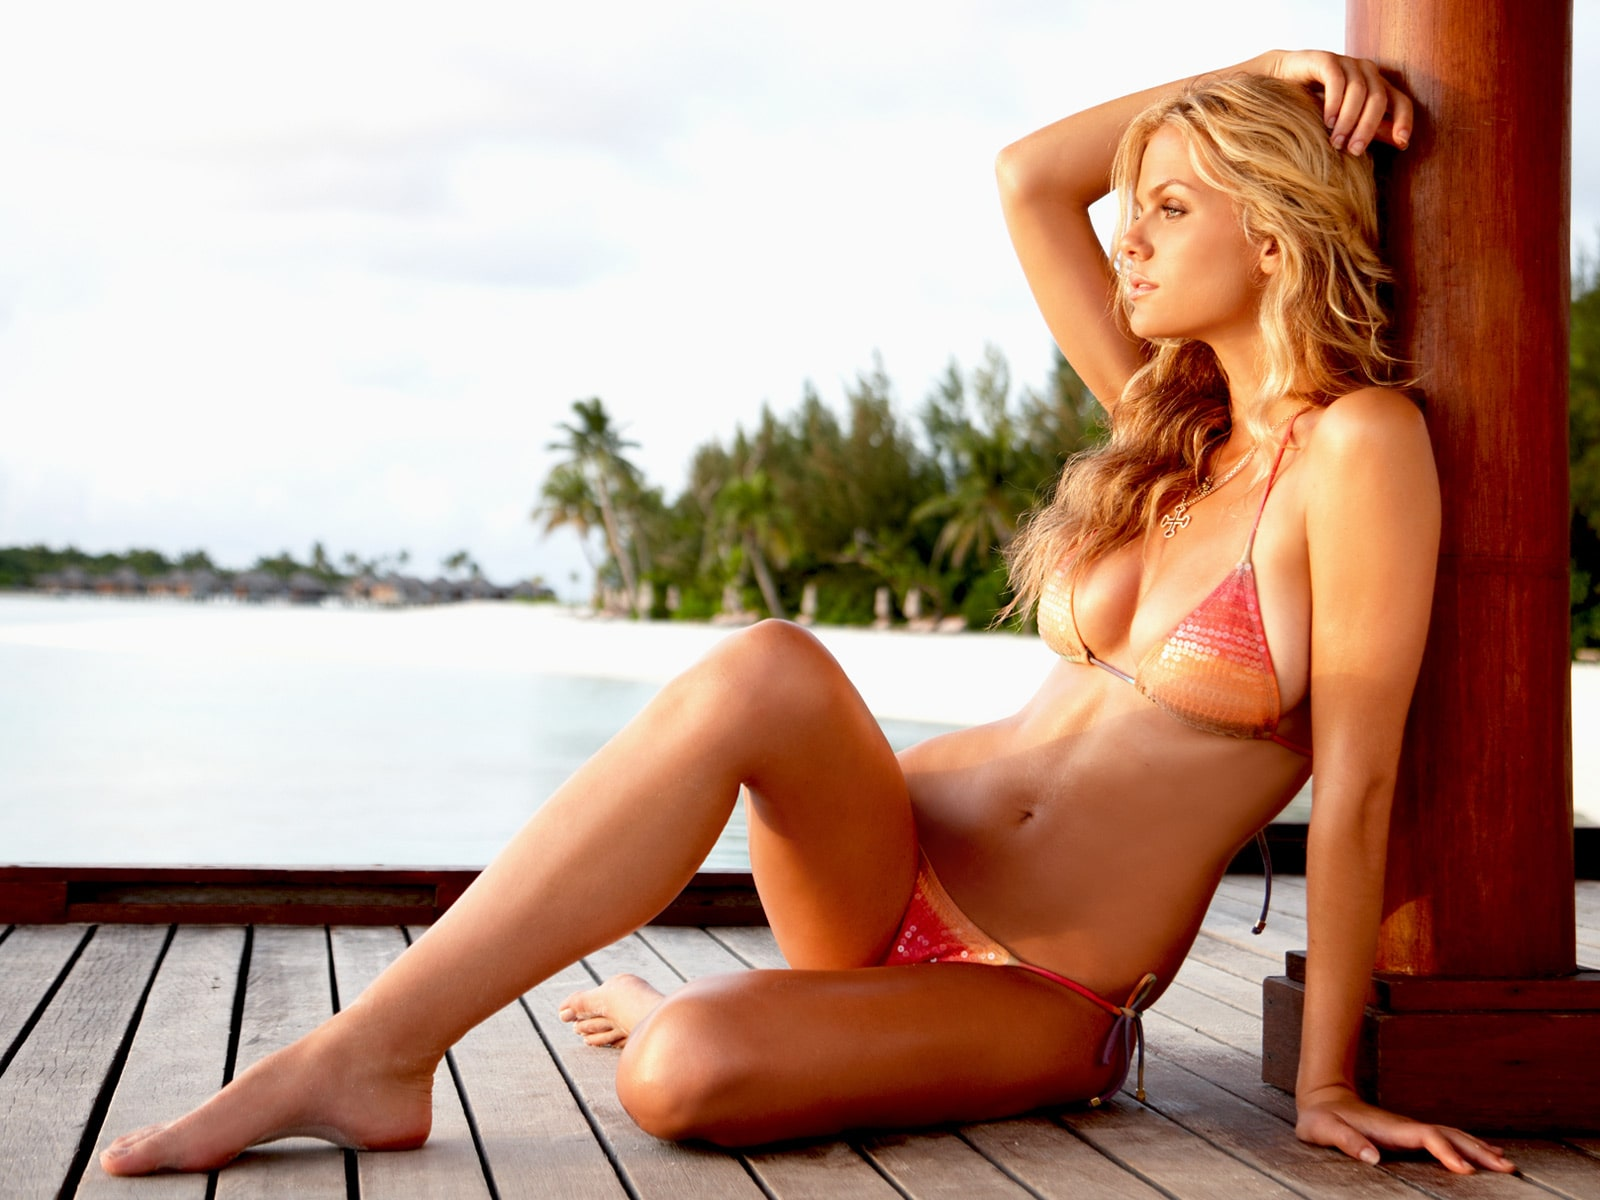 Brooklyn Decker hot pic